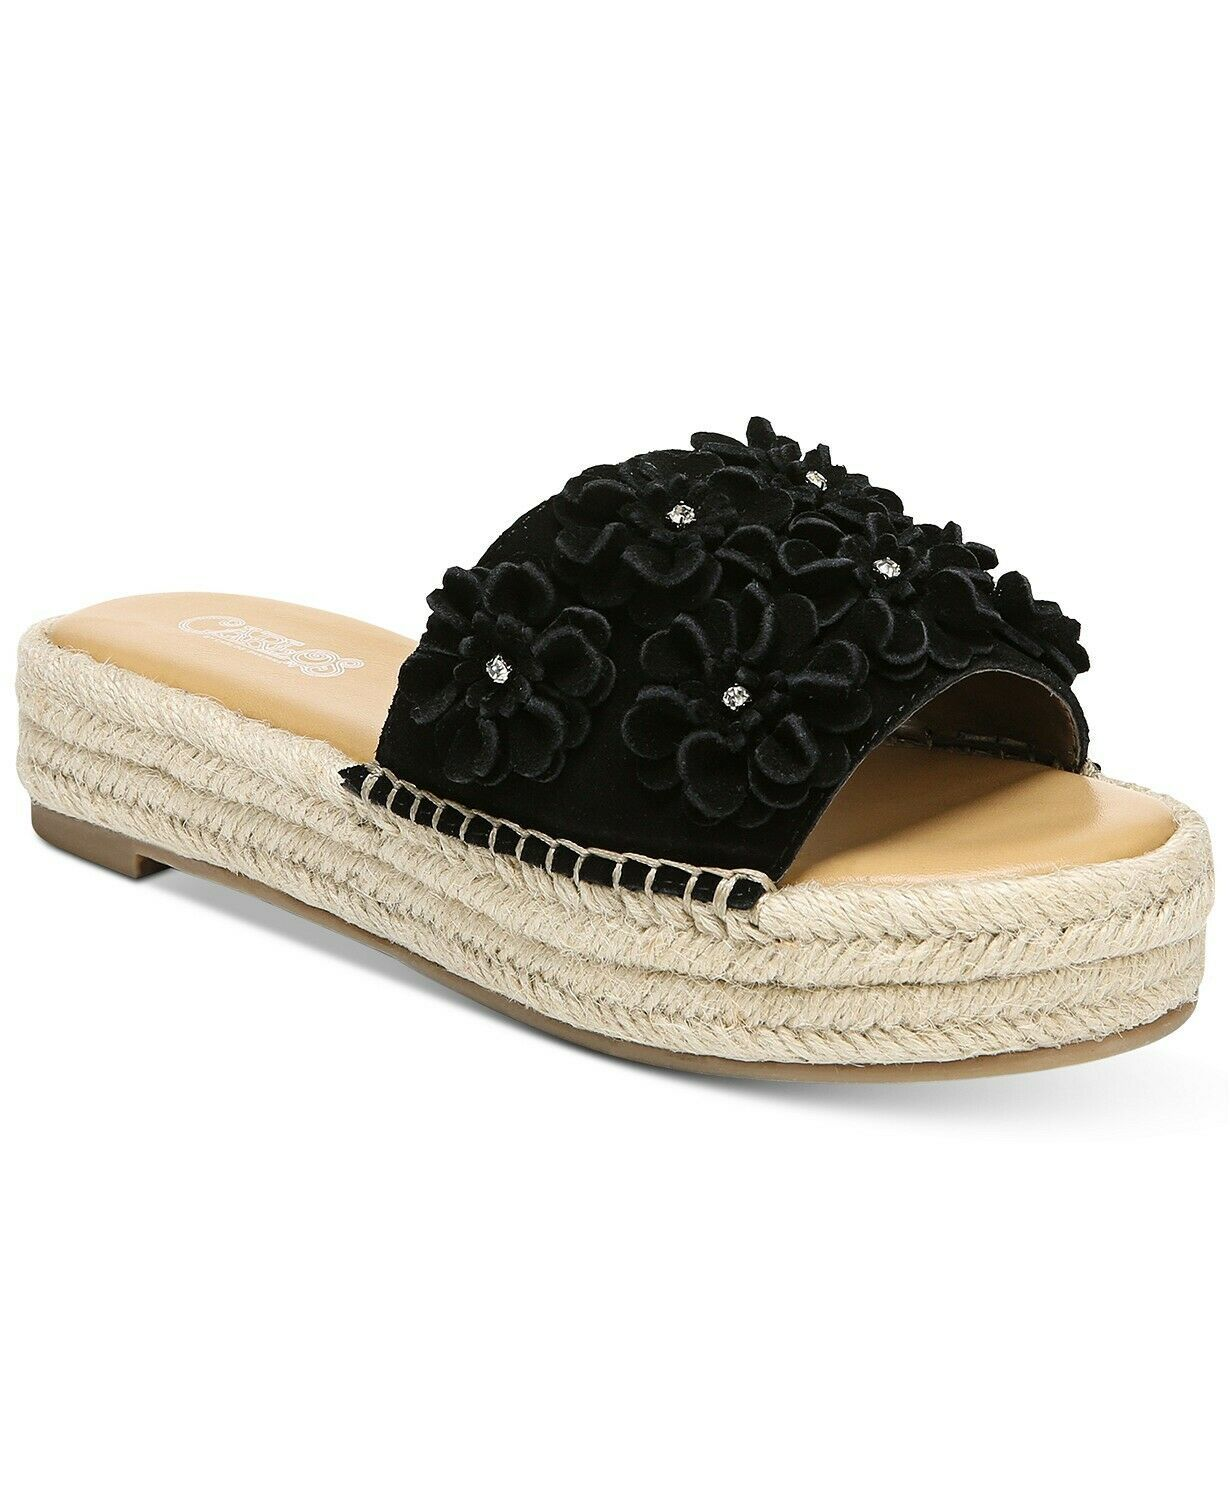 Carlos by Carlos Santana Chandler Sandals Black, Size 7 M